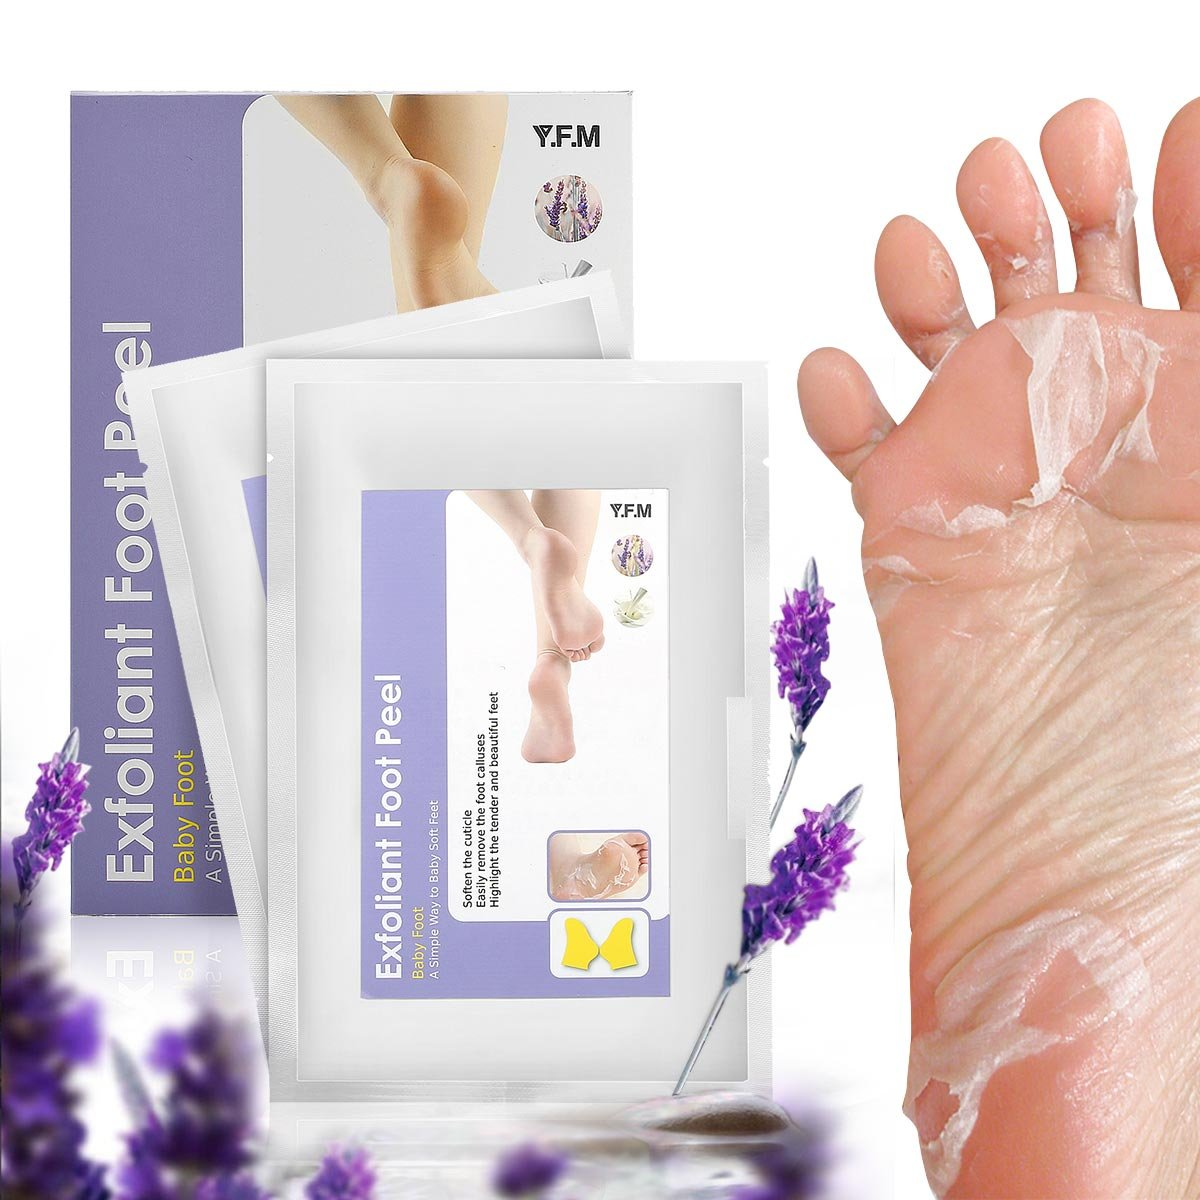 Foot Peel Mask, Y.F.M - 2 Pairs Foot Peeling Mask, Exfoliating Calluses and Dead Skin Remover ,Repair Rough Heels, Get Soft Baby Foot ,Lavender Scented